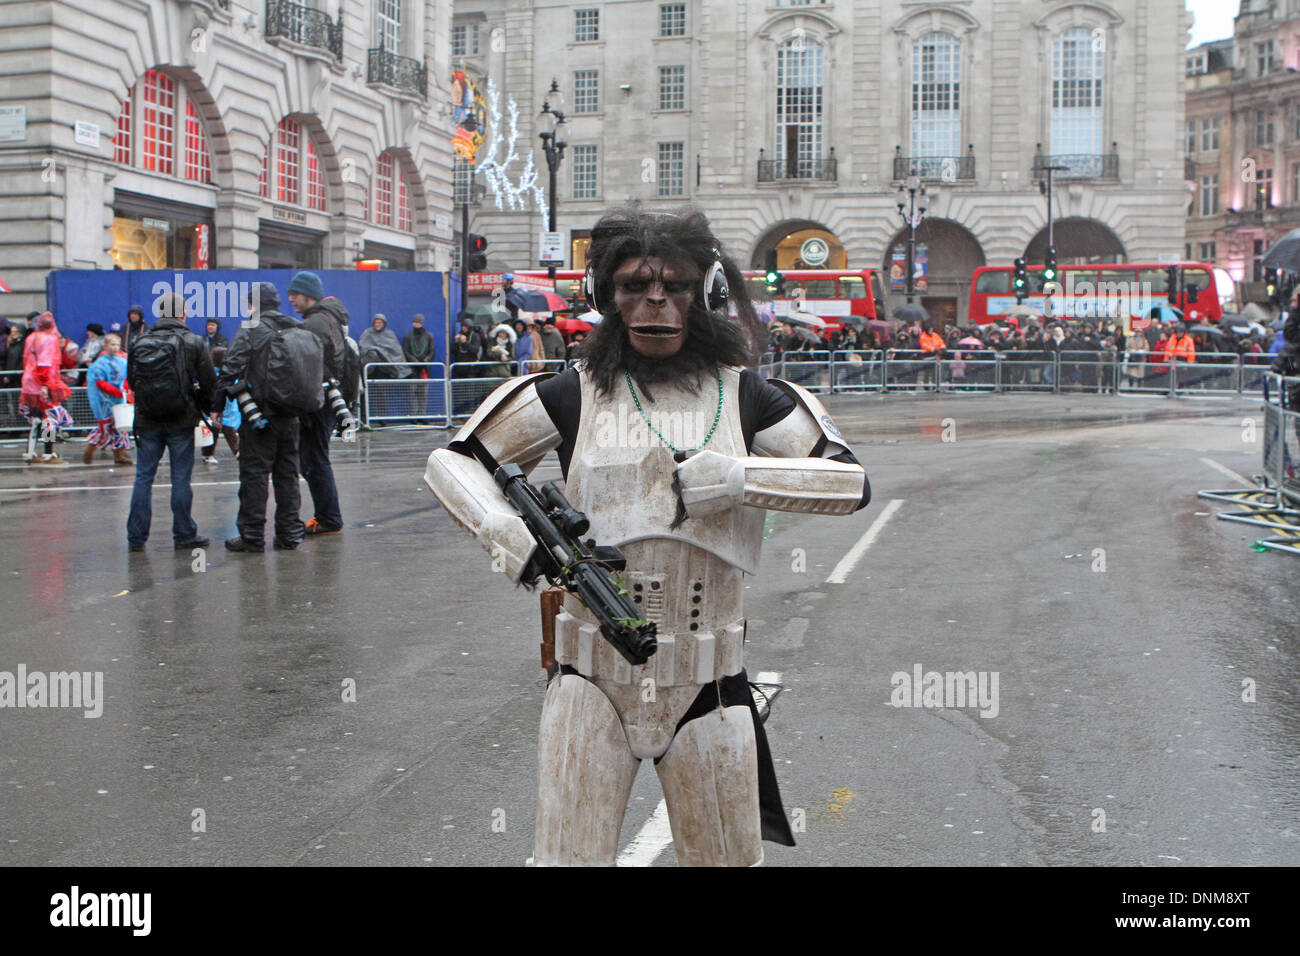 London,UK,1st January 2014,A cross between planet of the apes and star wars costume at the London's New Year's Day Parade 2014 Credit: Keith Larby/Alamy Live News - Stock Image